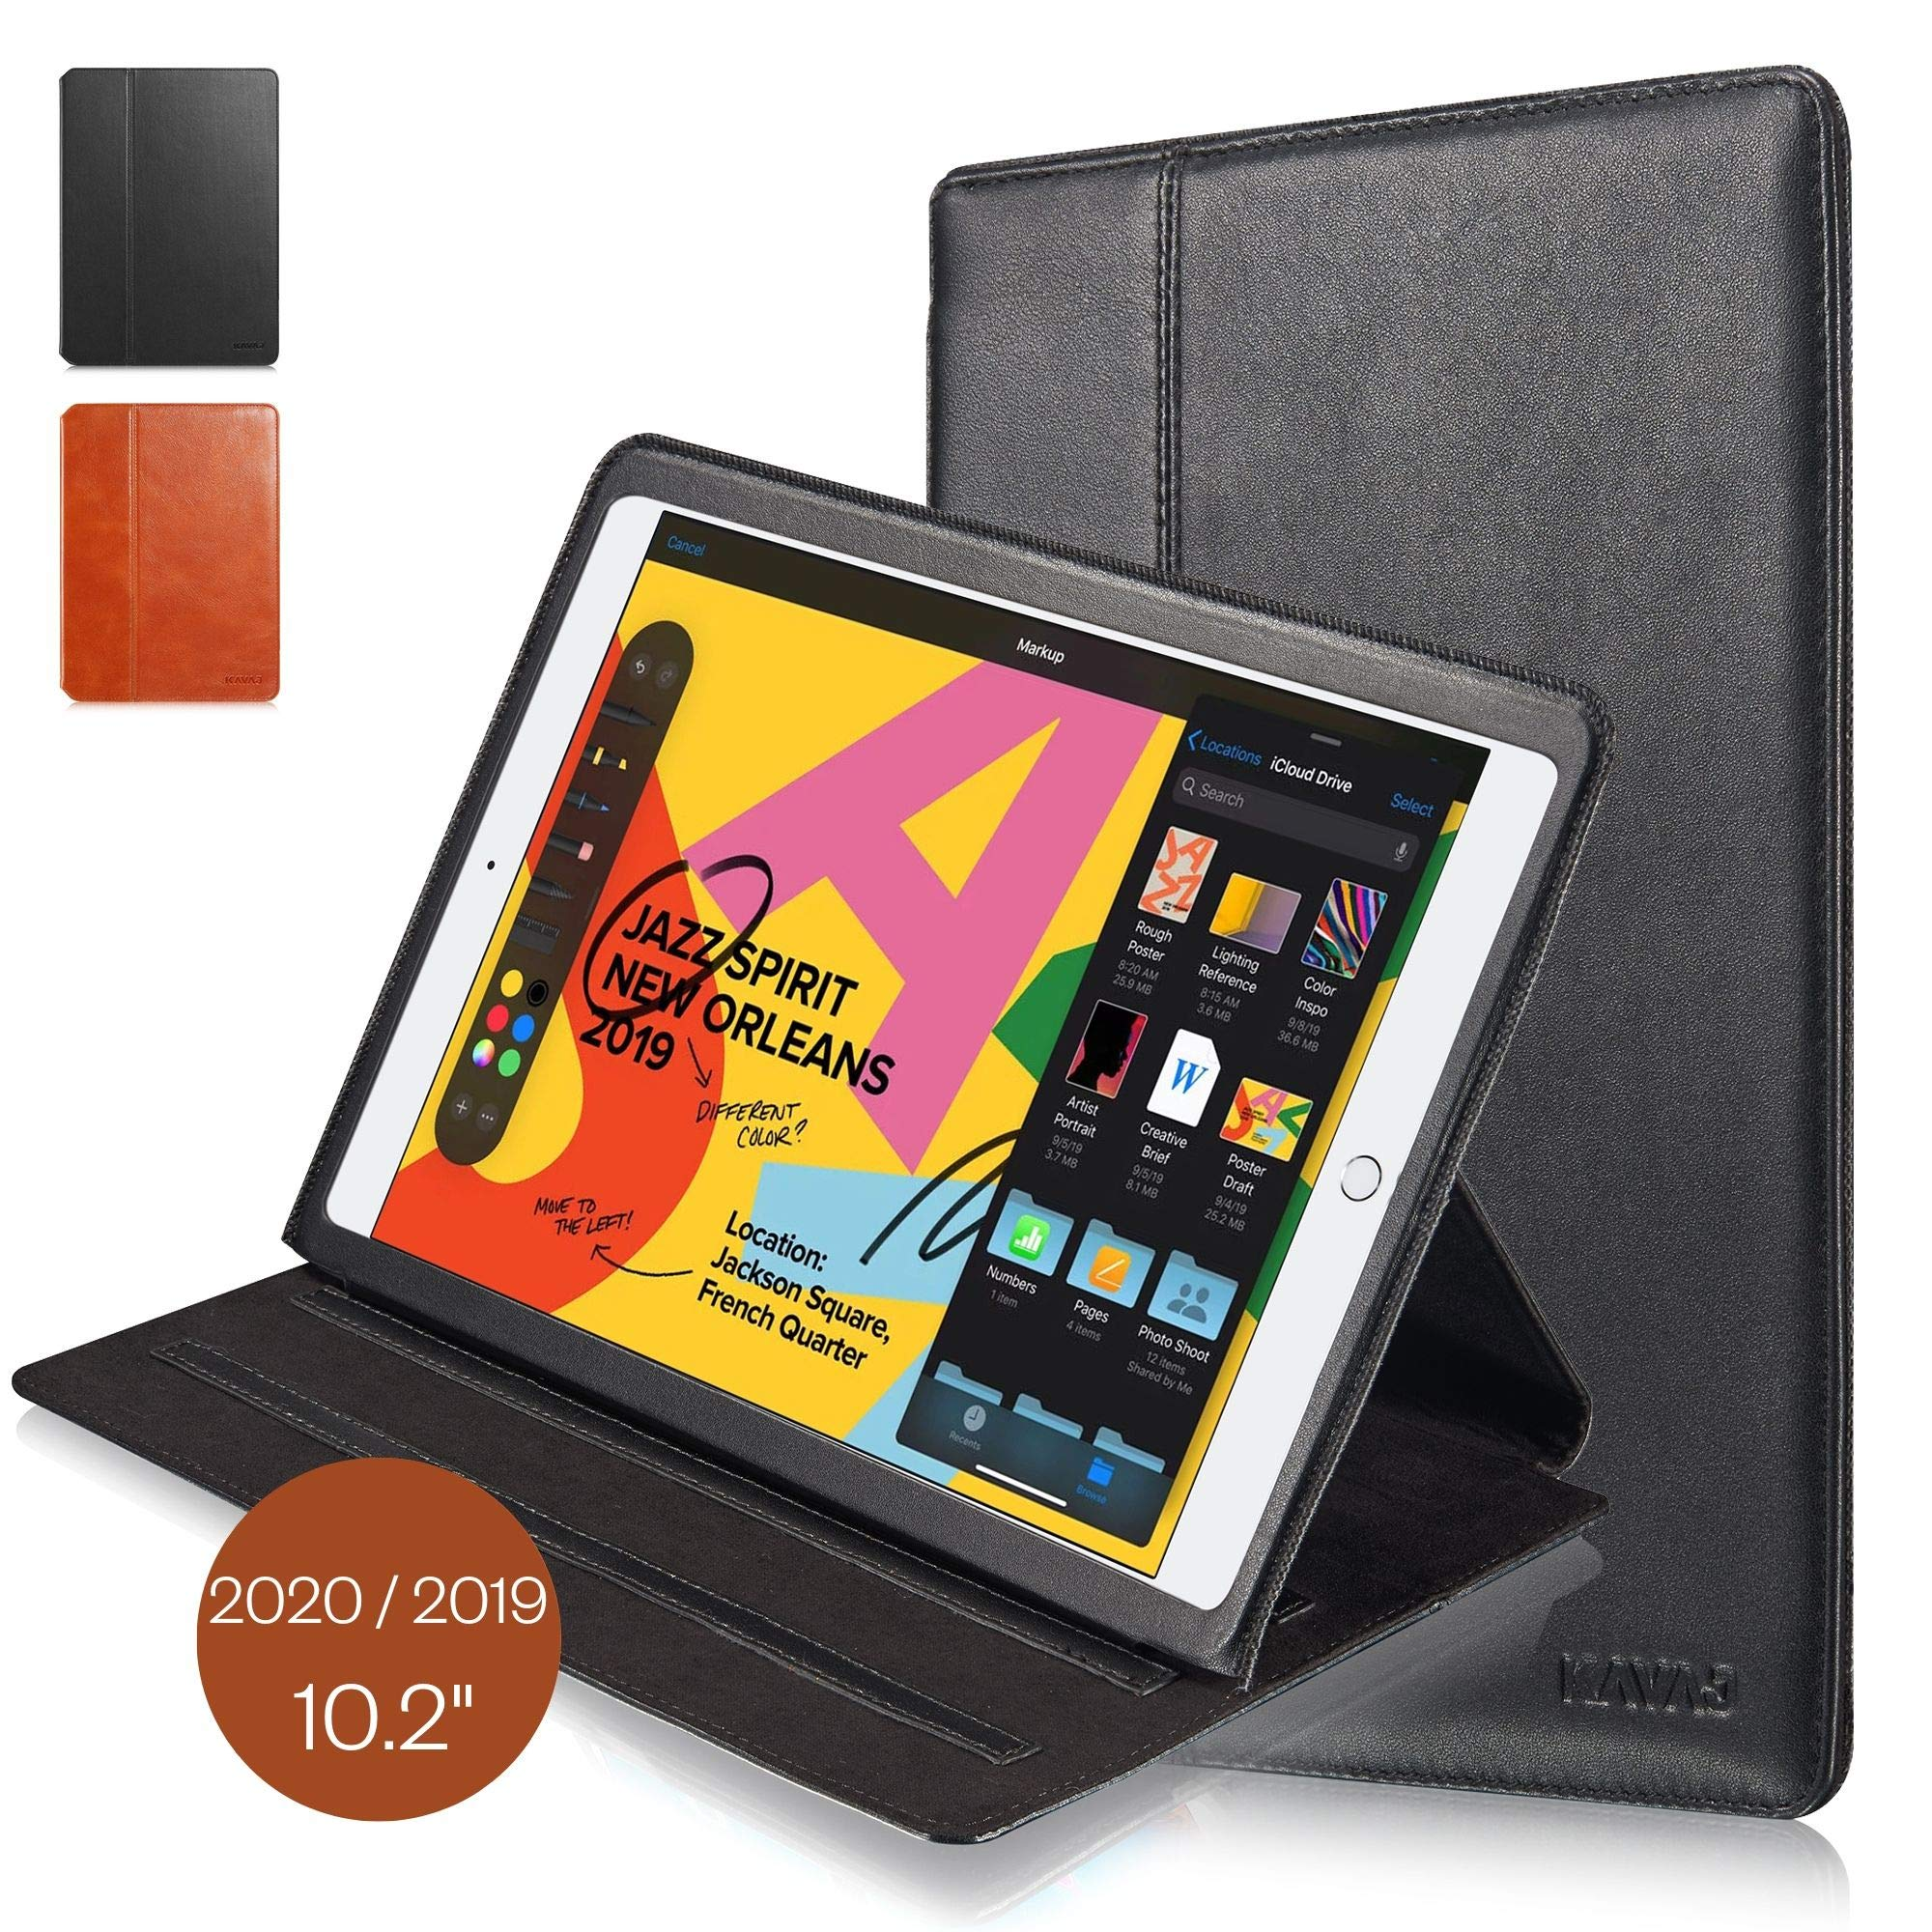 """KAVAJ Case Leather Cover Hamburg Works with Apple iPad 2019 10.2"""" Black Genuine Cowhide Leather with Built-in Five Stand Auto Wake/Sleep Function. Slim Fit Smart Folio Covers"""